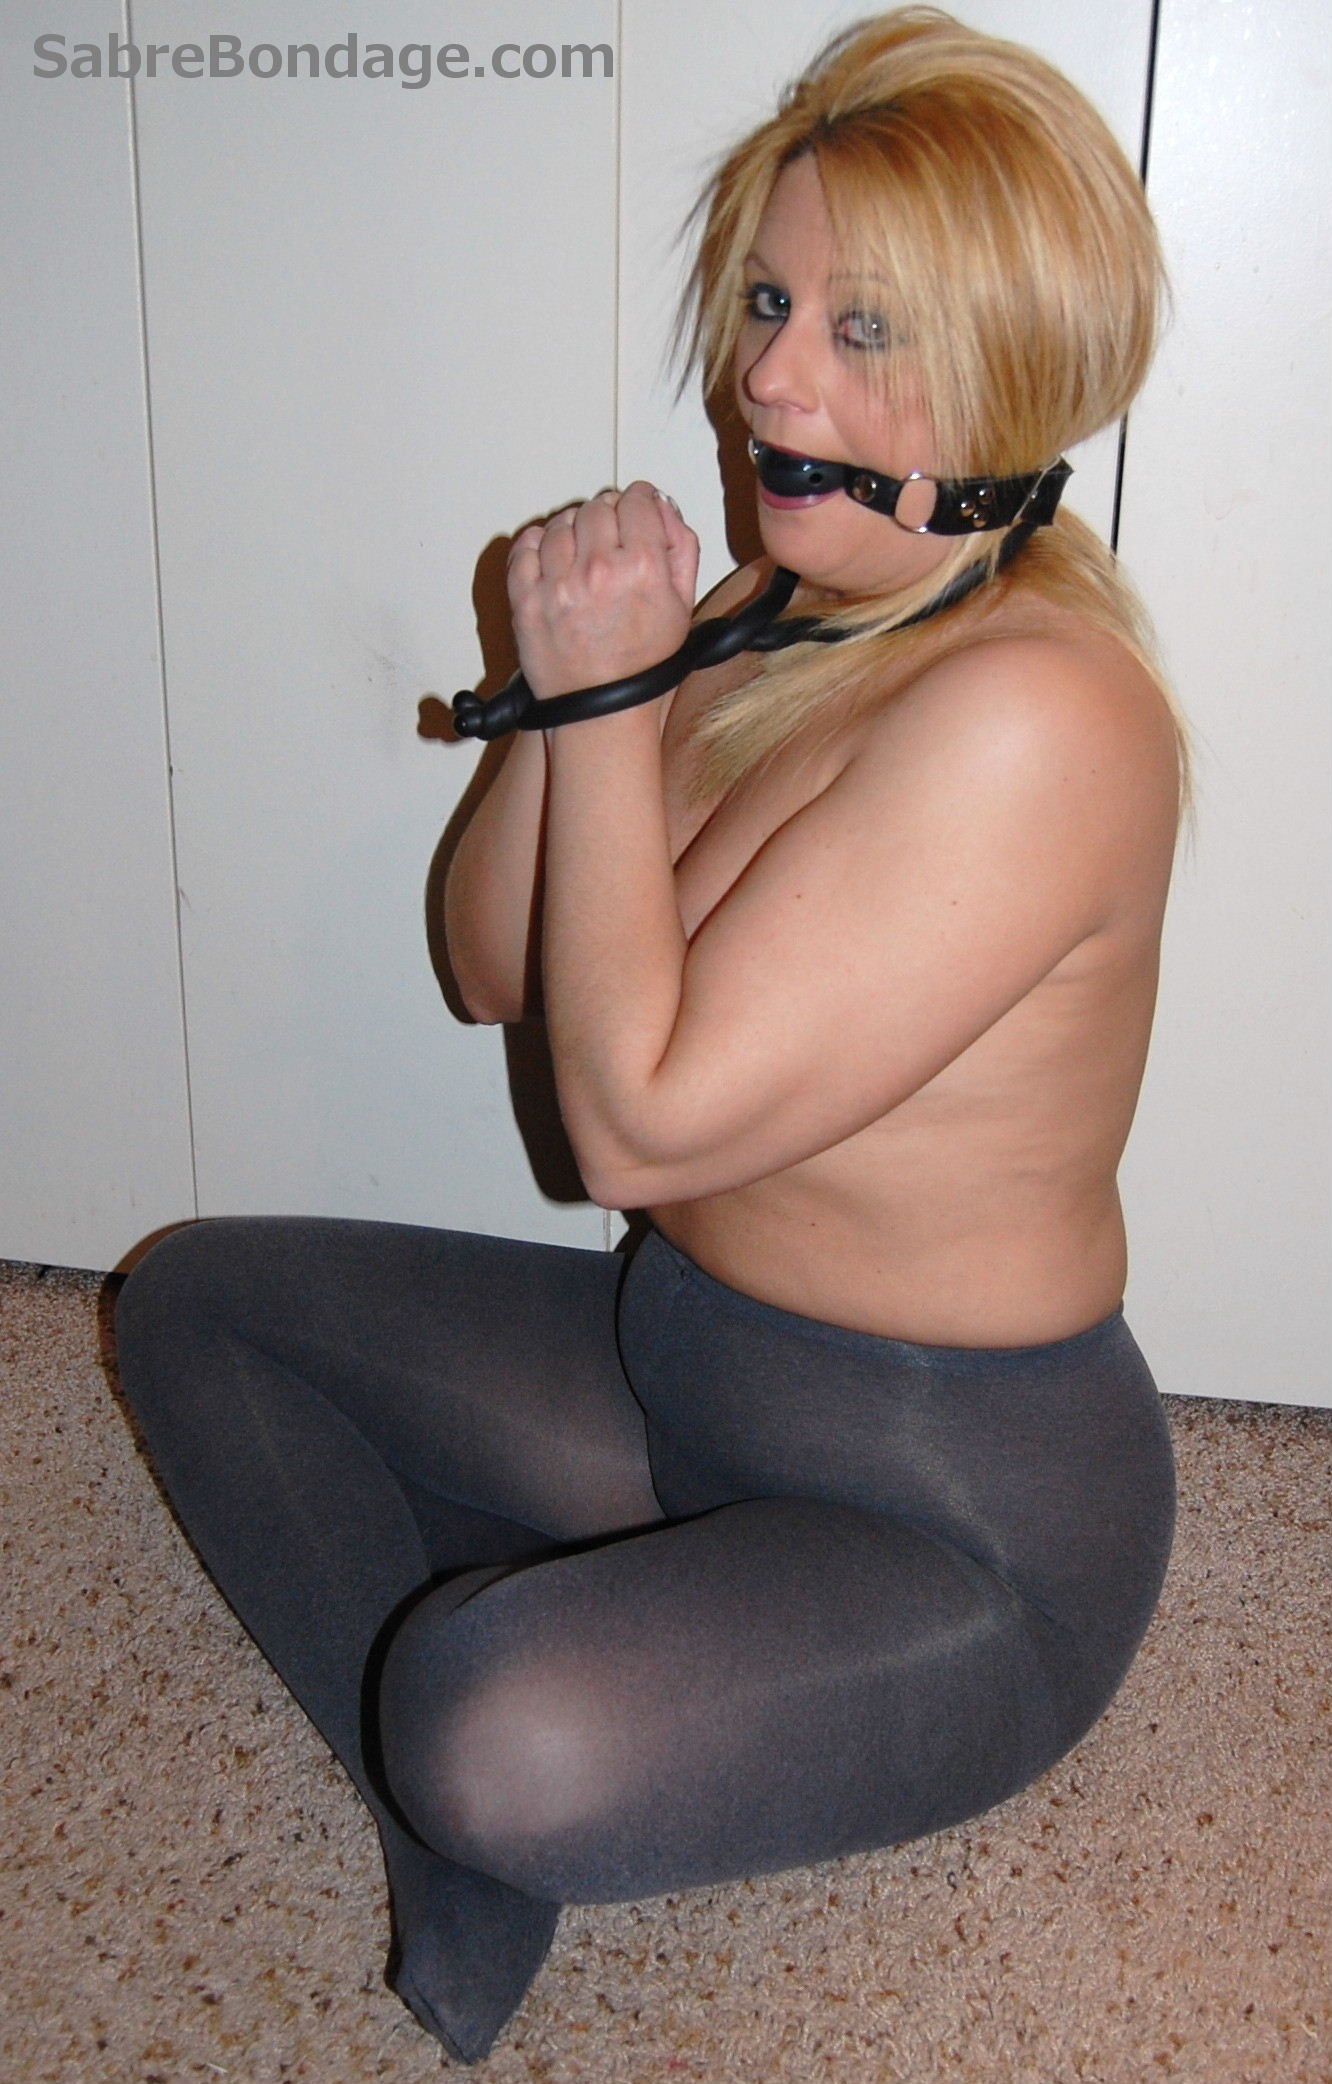 Drooling in Ballgag and Hose 1